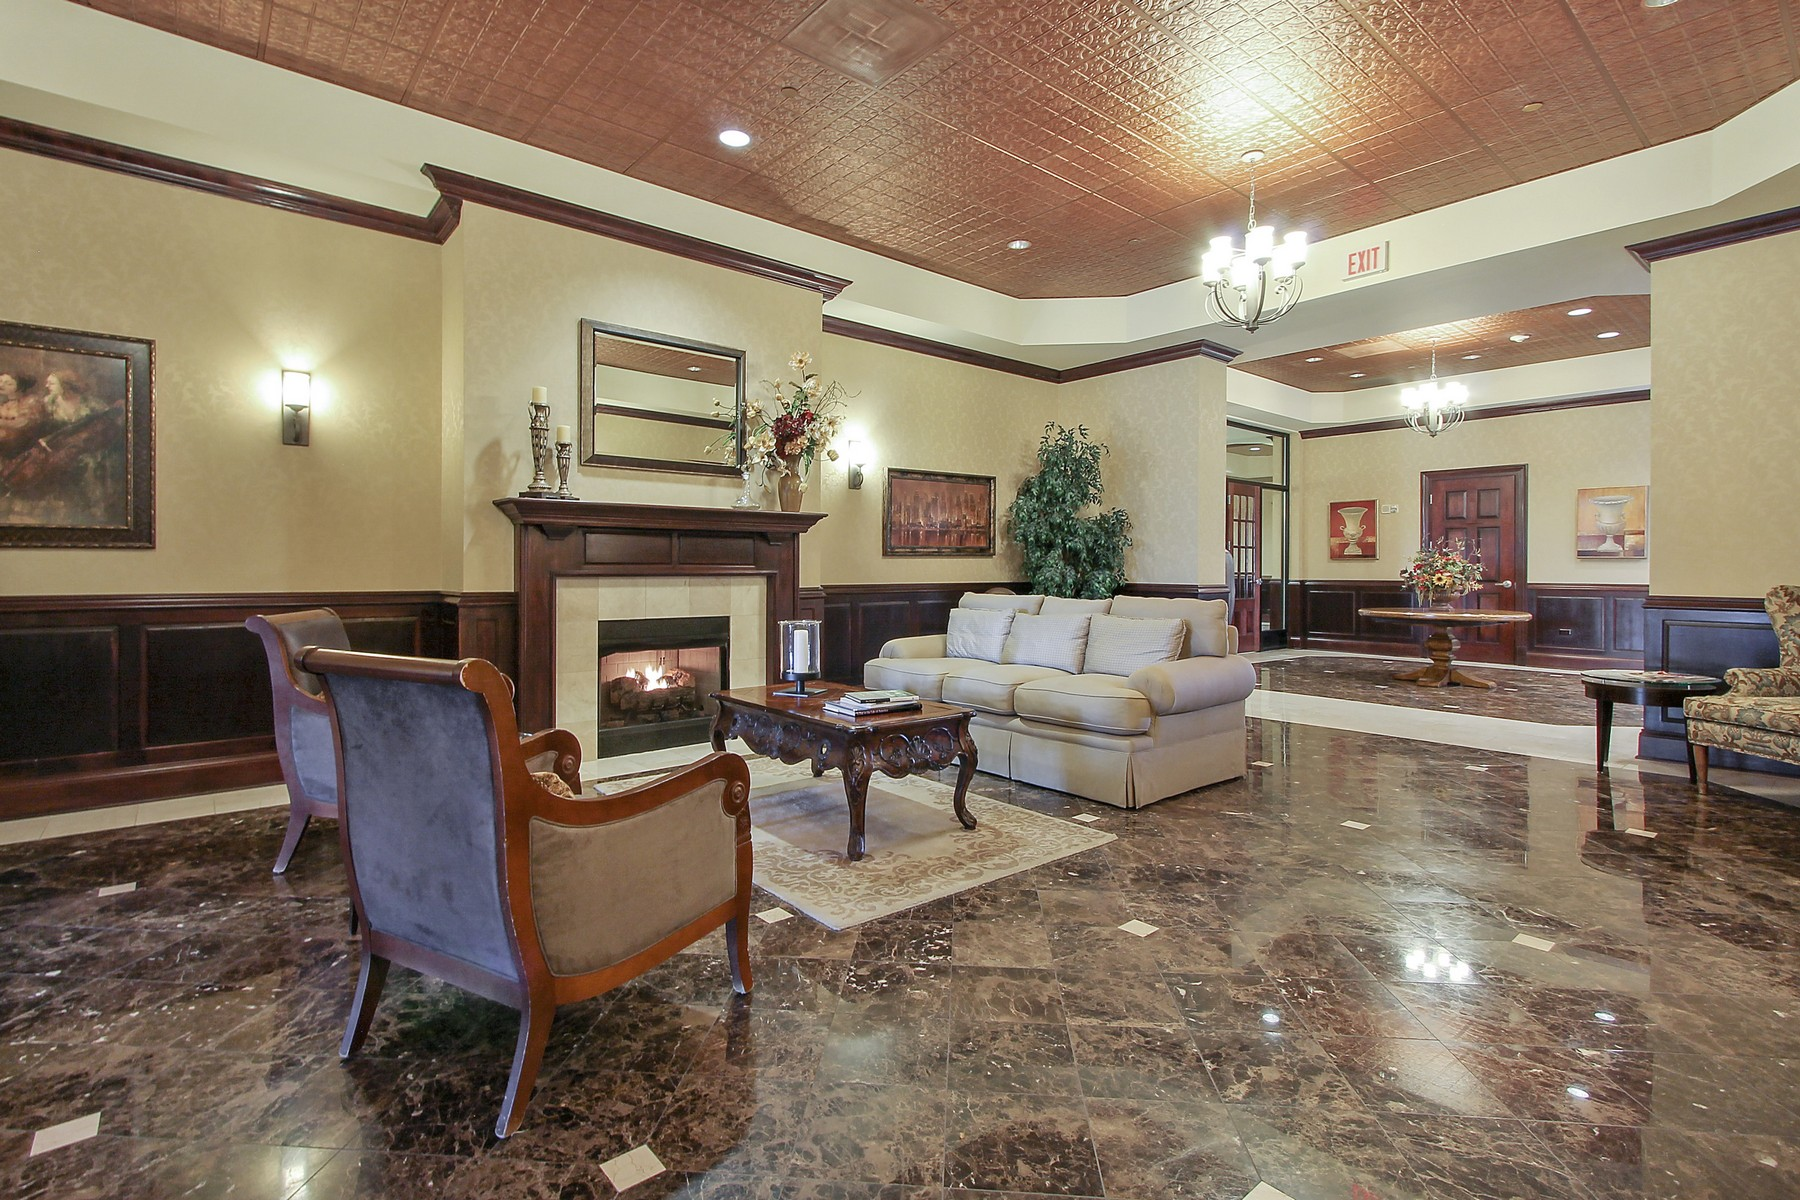 Additional photo for property listing at A Very Rare Find In Suburban Chicago 50 N Plum Grove Road Unit 701E Palatine, Illinois 60067 United States